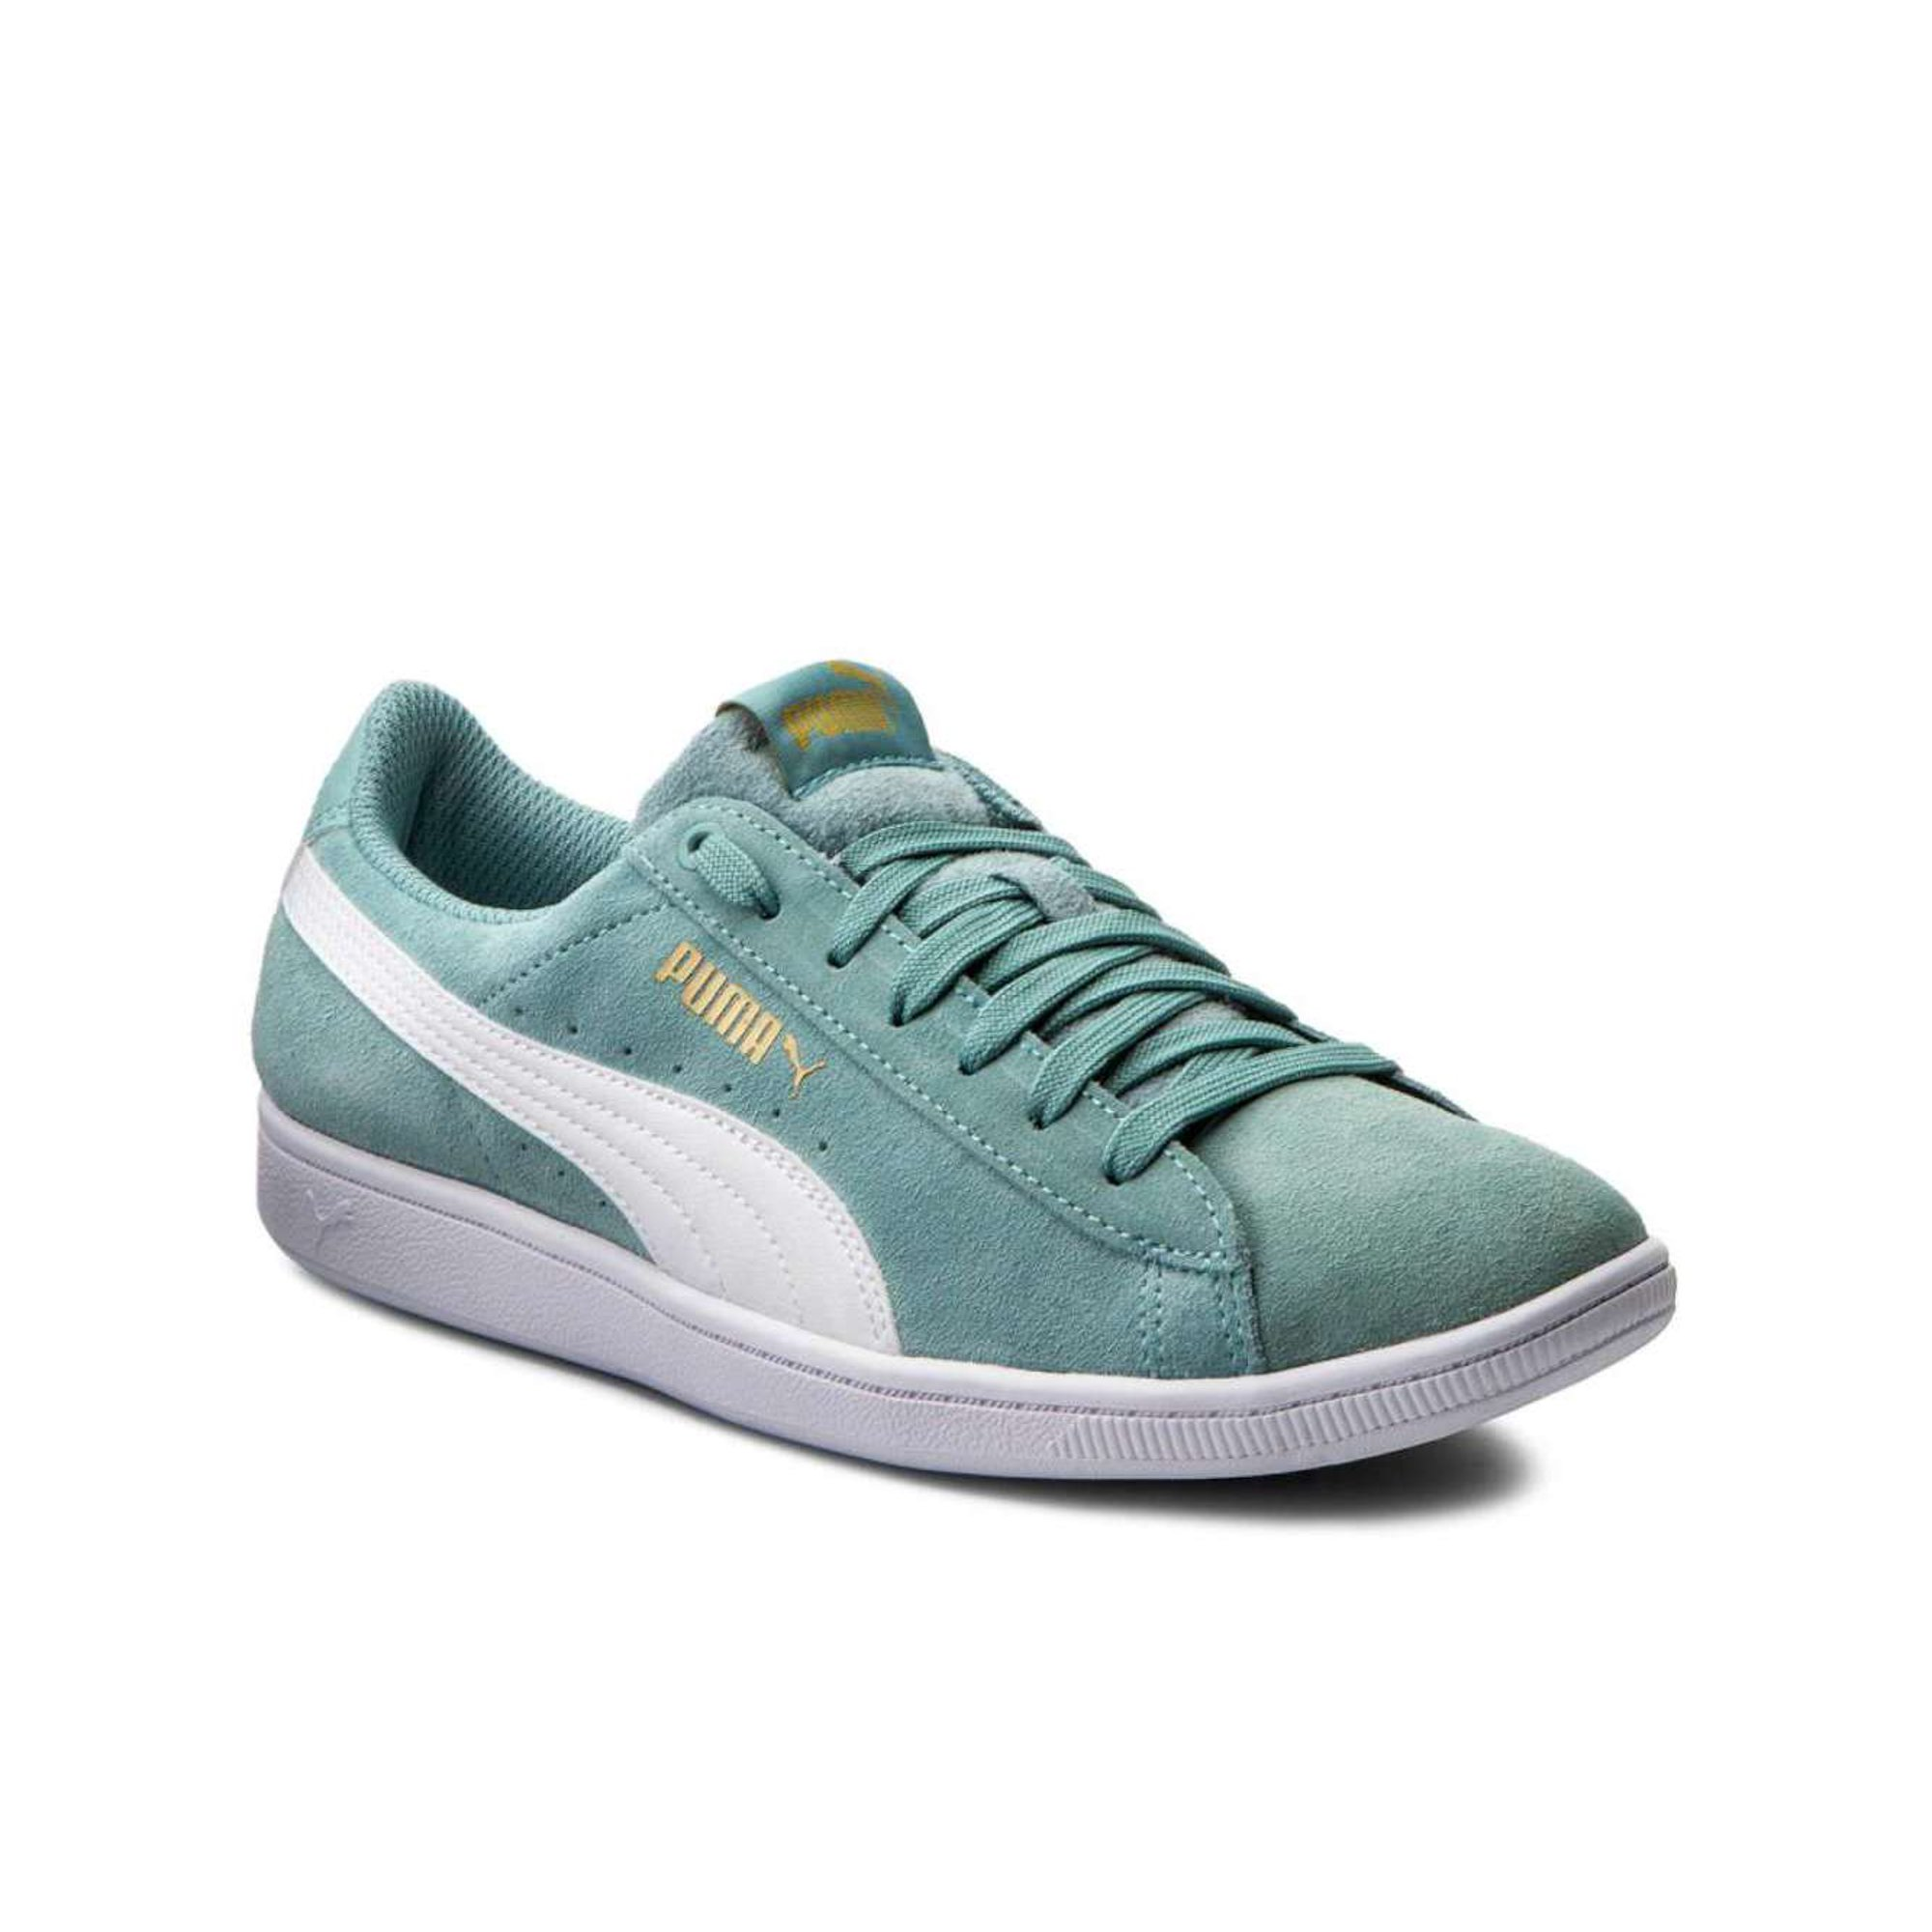 Utgivningsdatum bästa valet kolla upp Puma Womens Vikky Suede Low Top Lace Up Fashion Sneakers ...